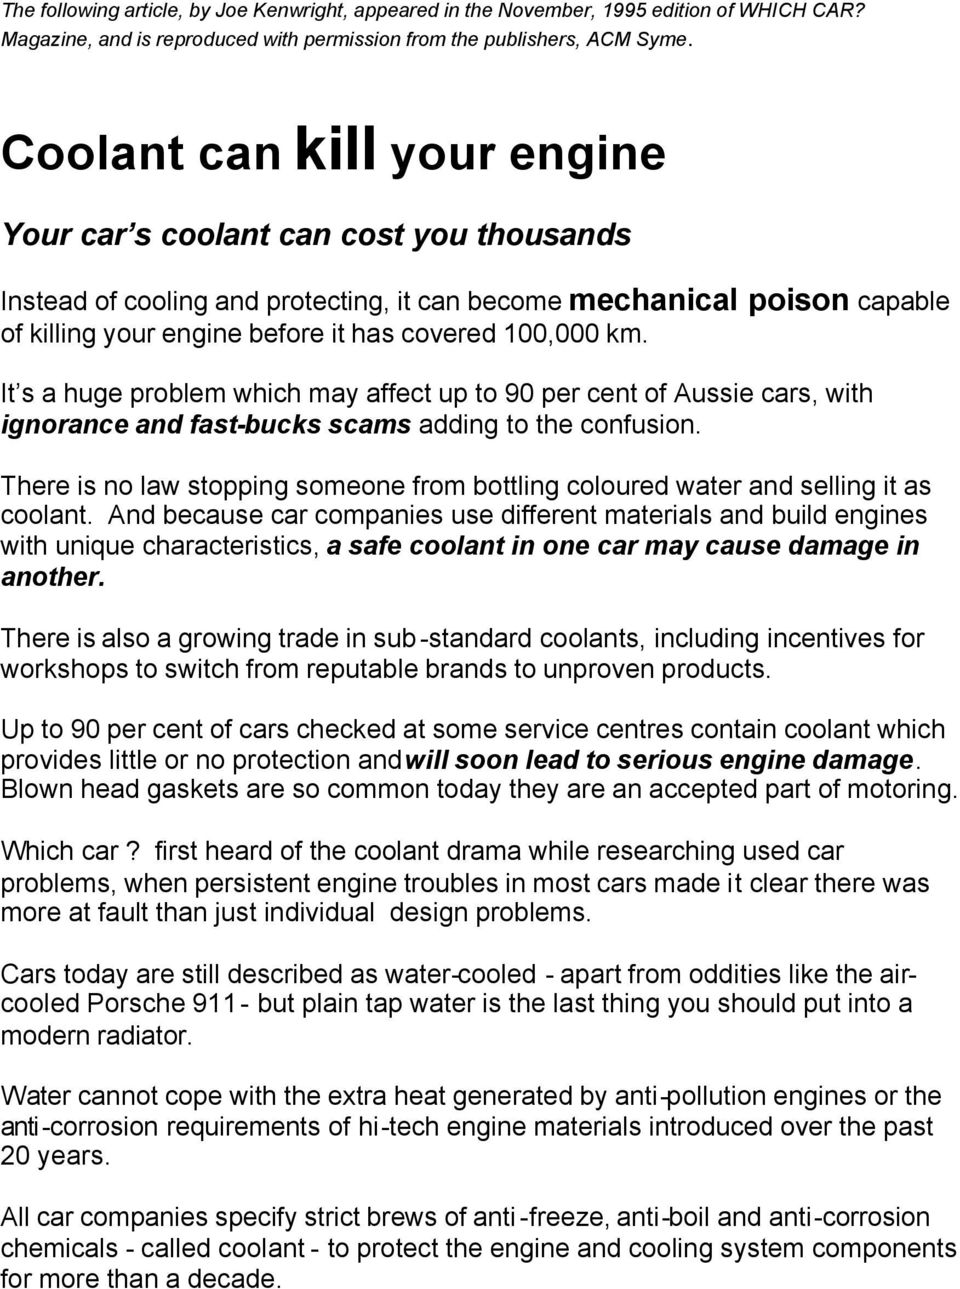 Coolant Can Kill Your Engine Pdf Damage Km It S A Huge Problem Which May Affect Up To 90 Per Cent Of Aussie